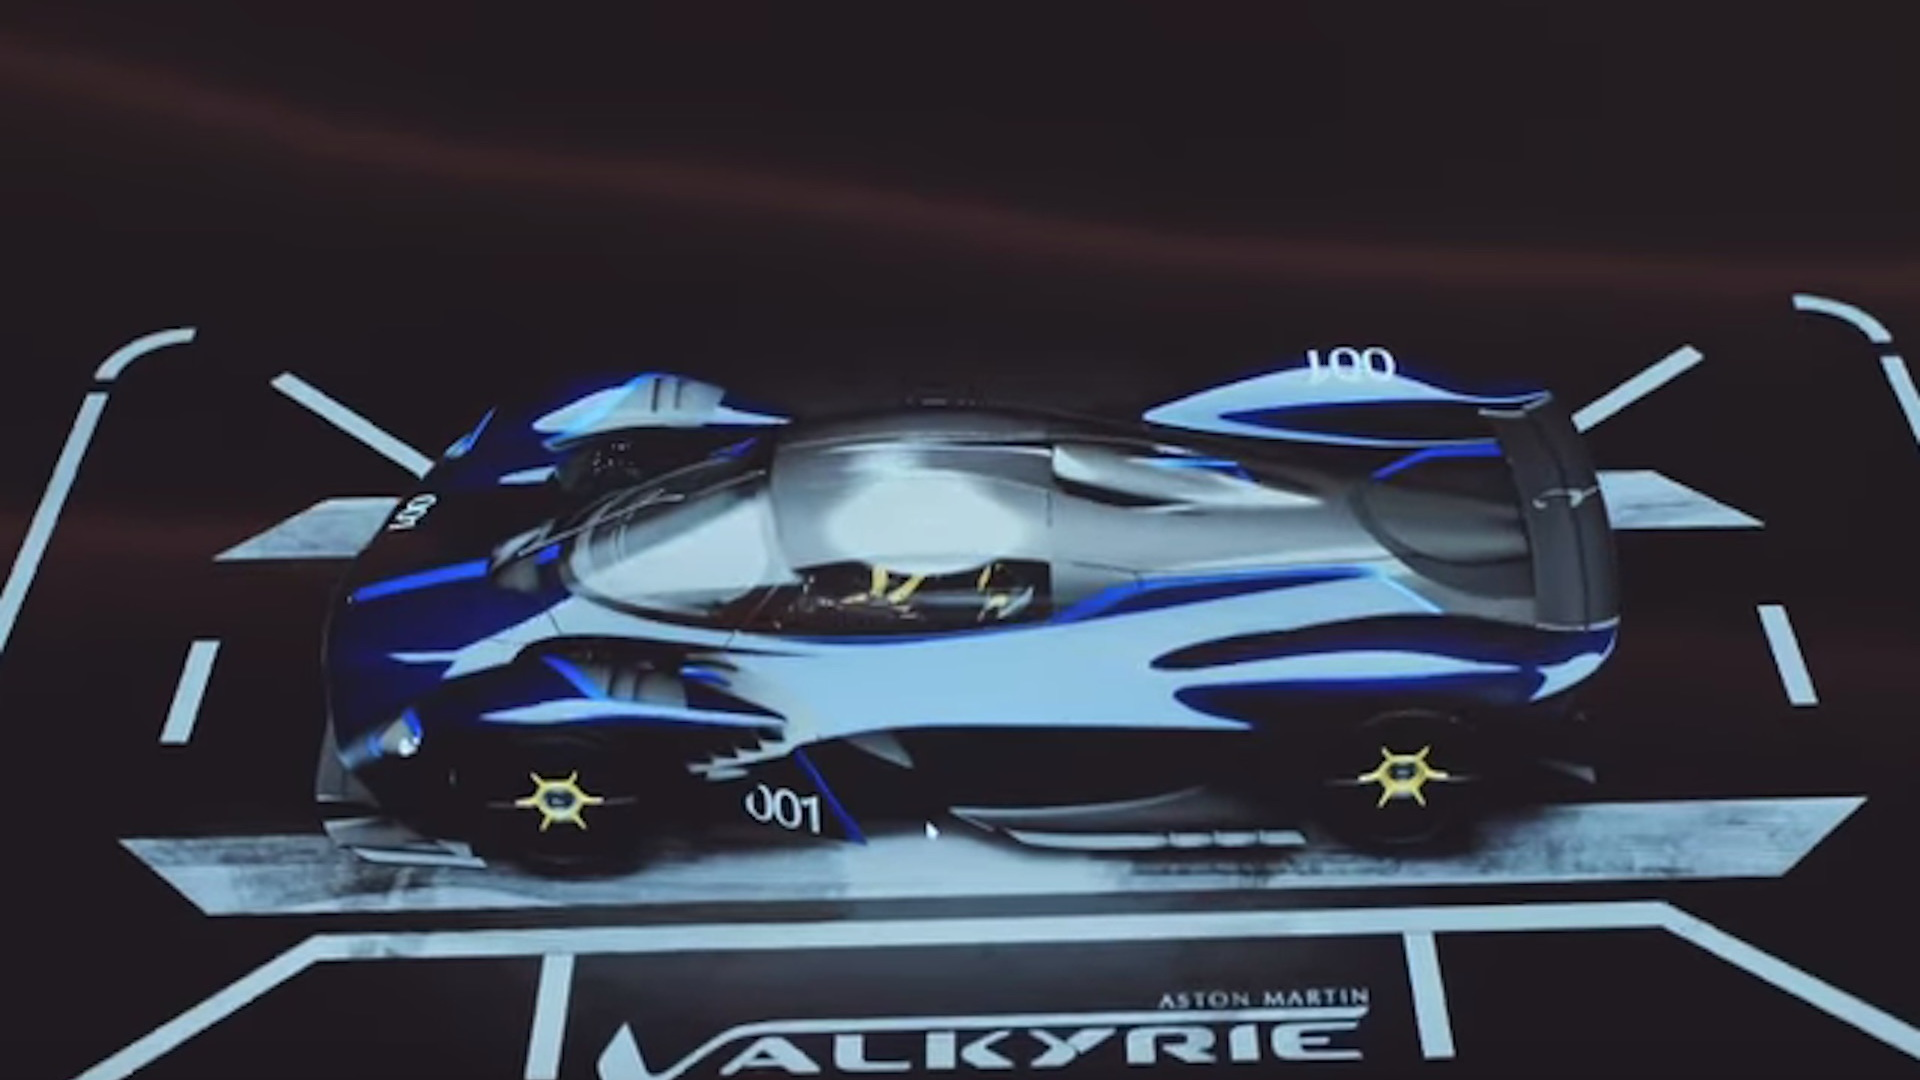 Specifying an Aston Martin Valkyrie supercar